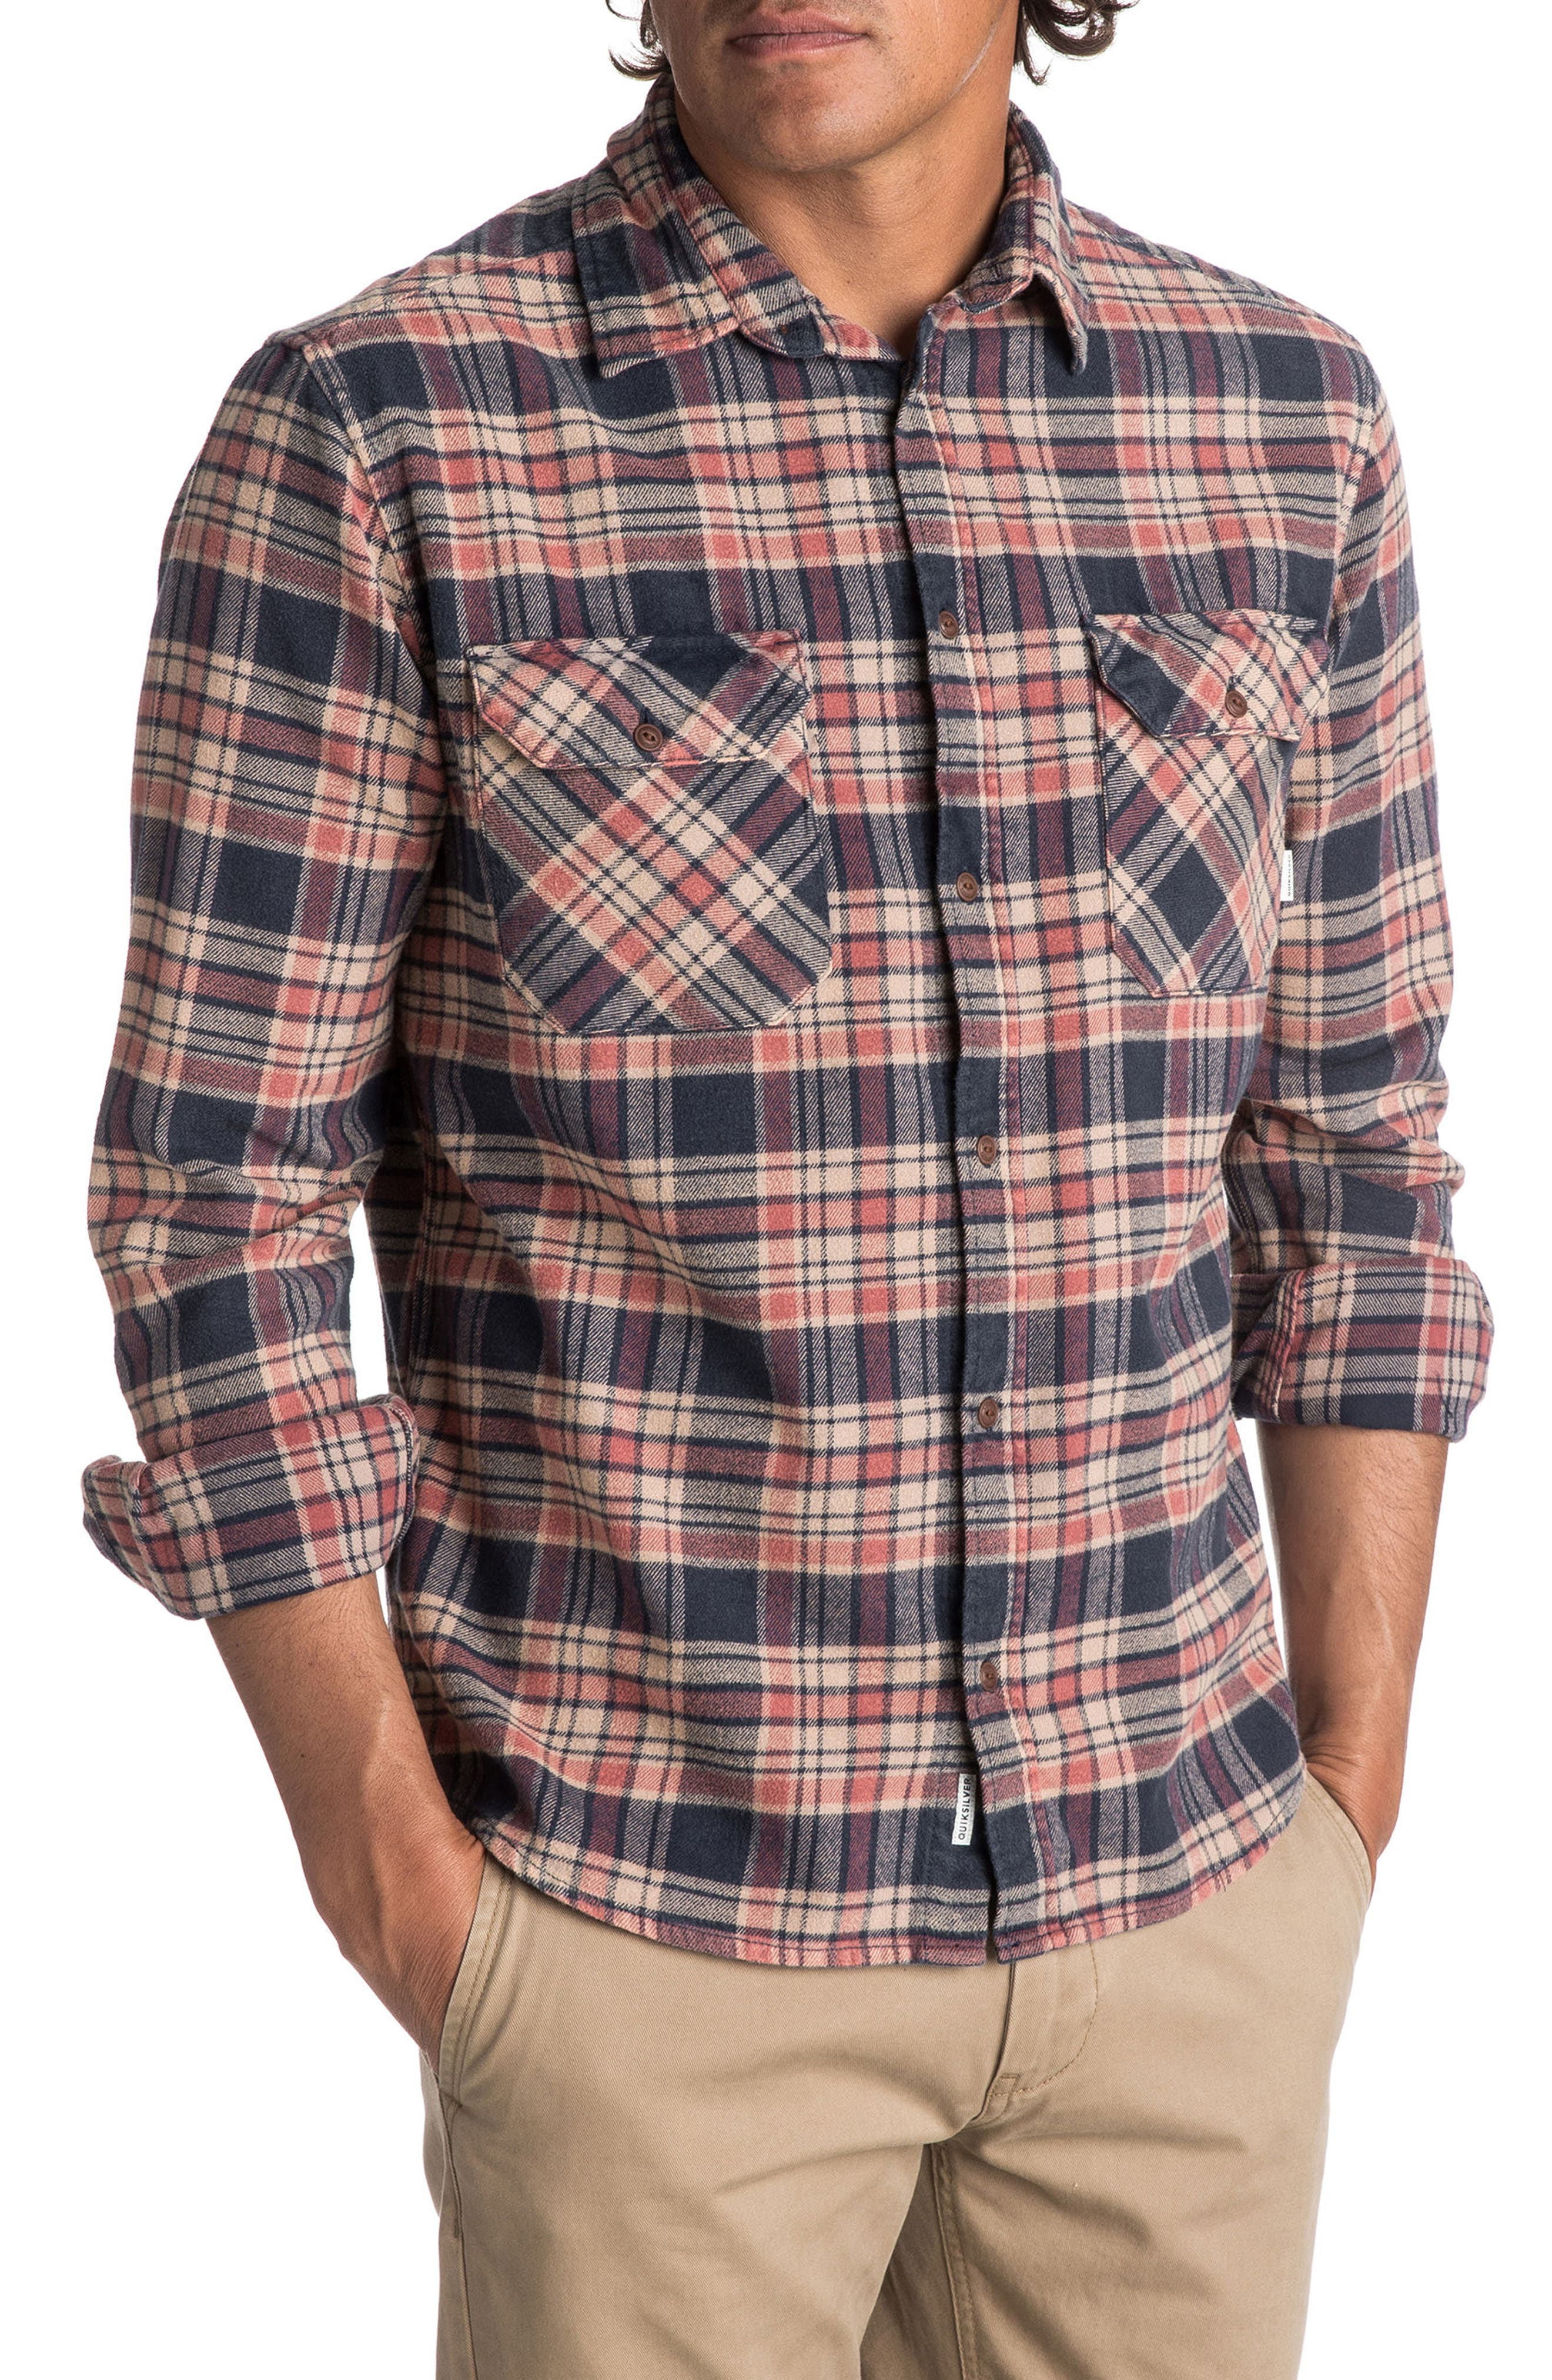 Tangloop Plaid Flannel Shirt,                         Main,                         color, 005